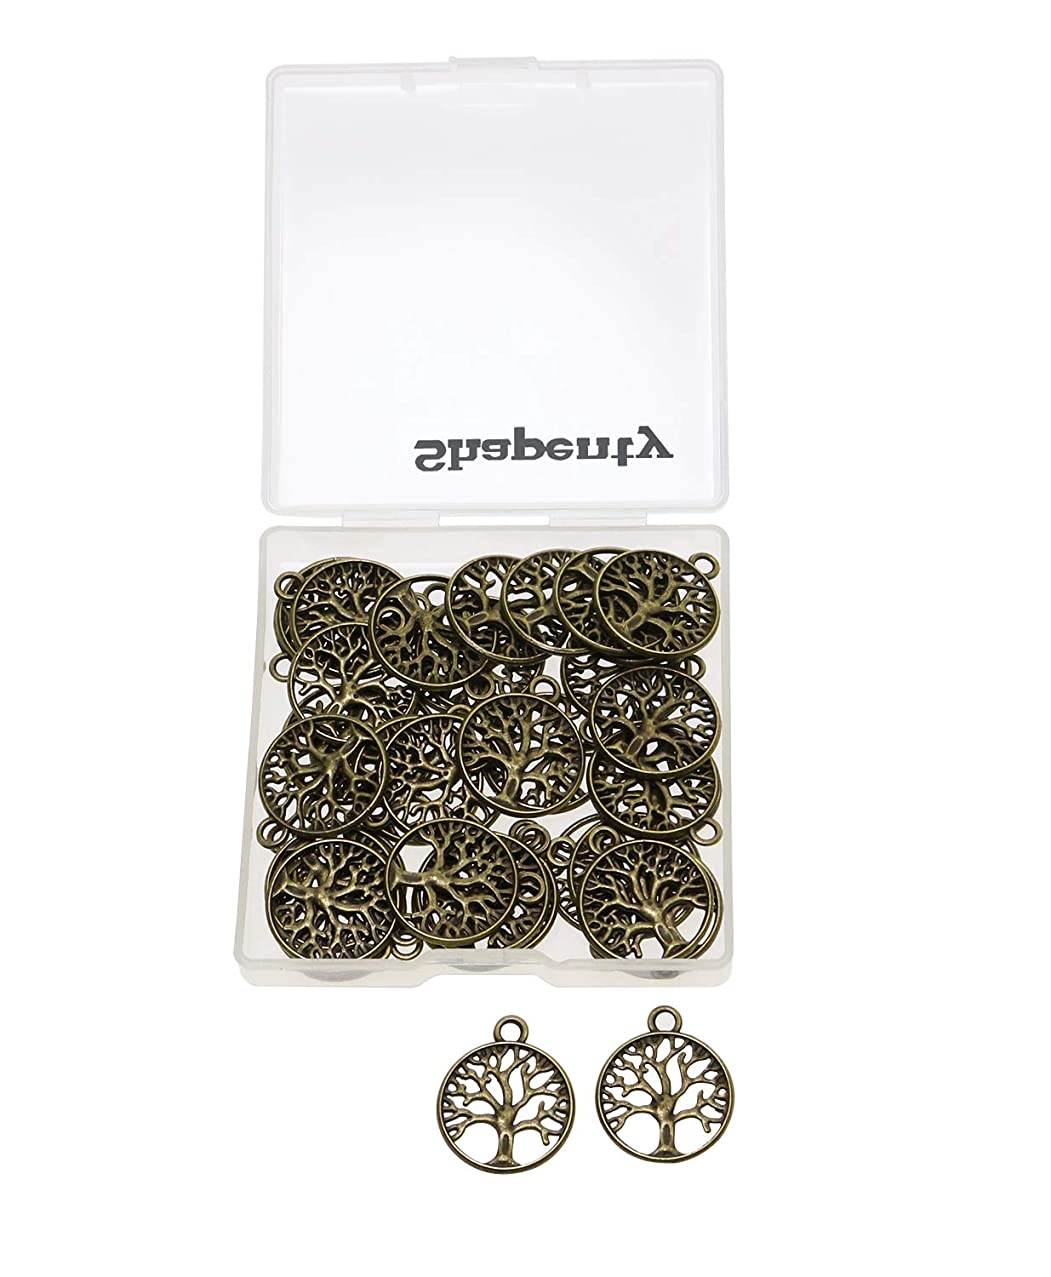 Shapenty Round Metal Tree of Life Charms Pendants Beads Bulk Jewelry Findings Making Accessory for DIY Craft Bracelet Necklace Earring Keychain, 50PCS (Antique Bronze)